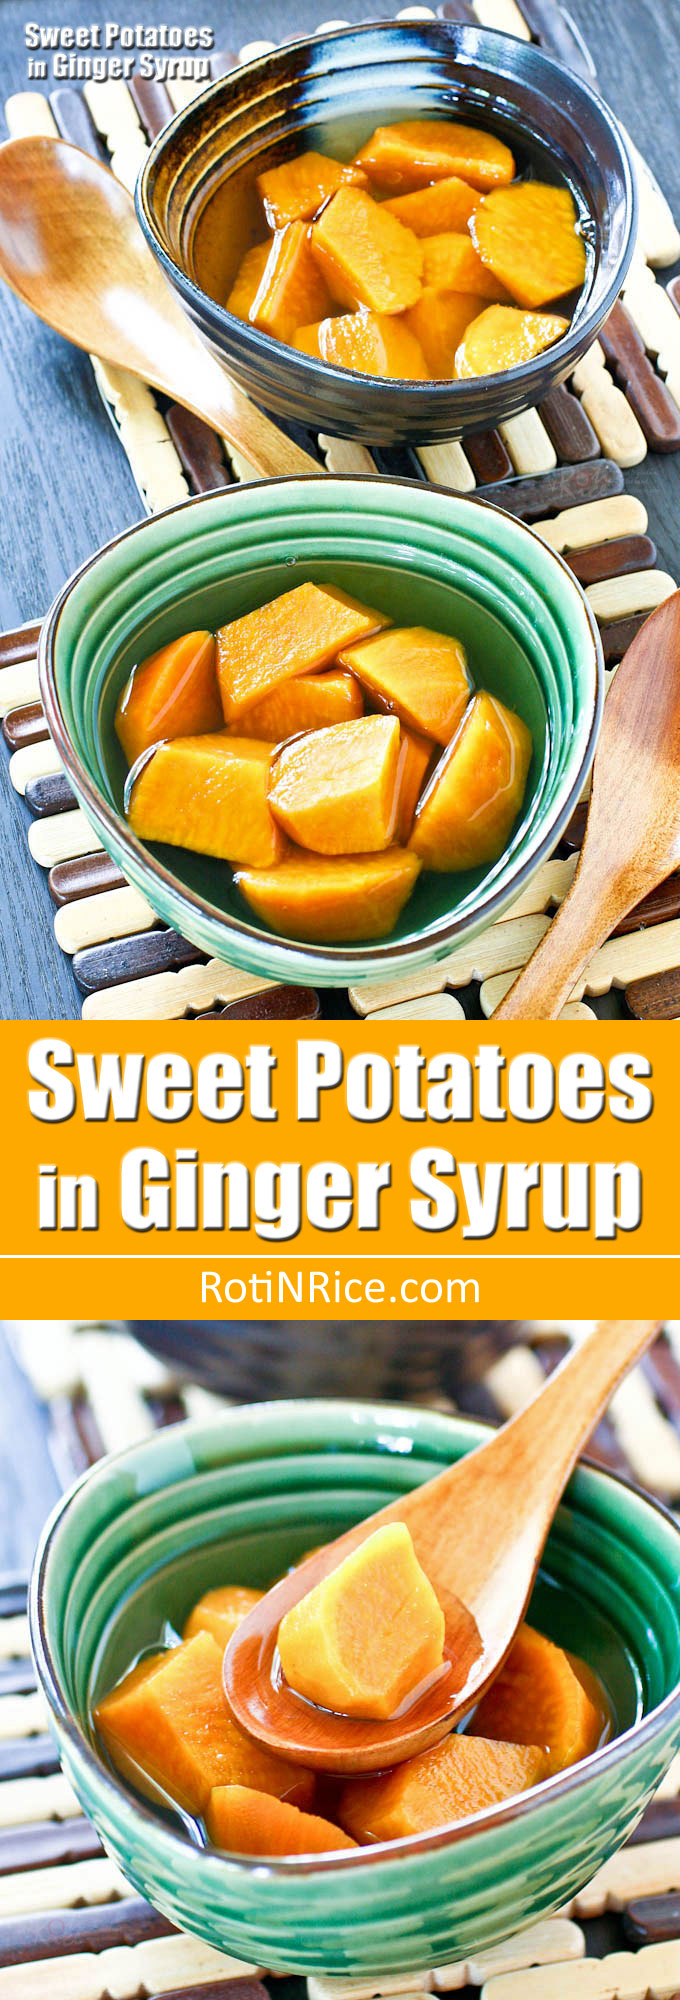 Sweet Potatoes in Ginger Syrup is a delicious and warming Chinese dessert using only 3 ingredients. It takes less than 30 minutes to prepare. | RotiNRice.com